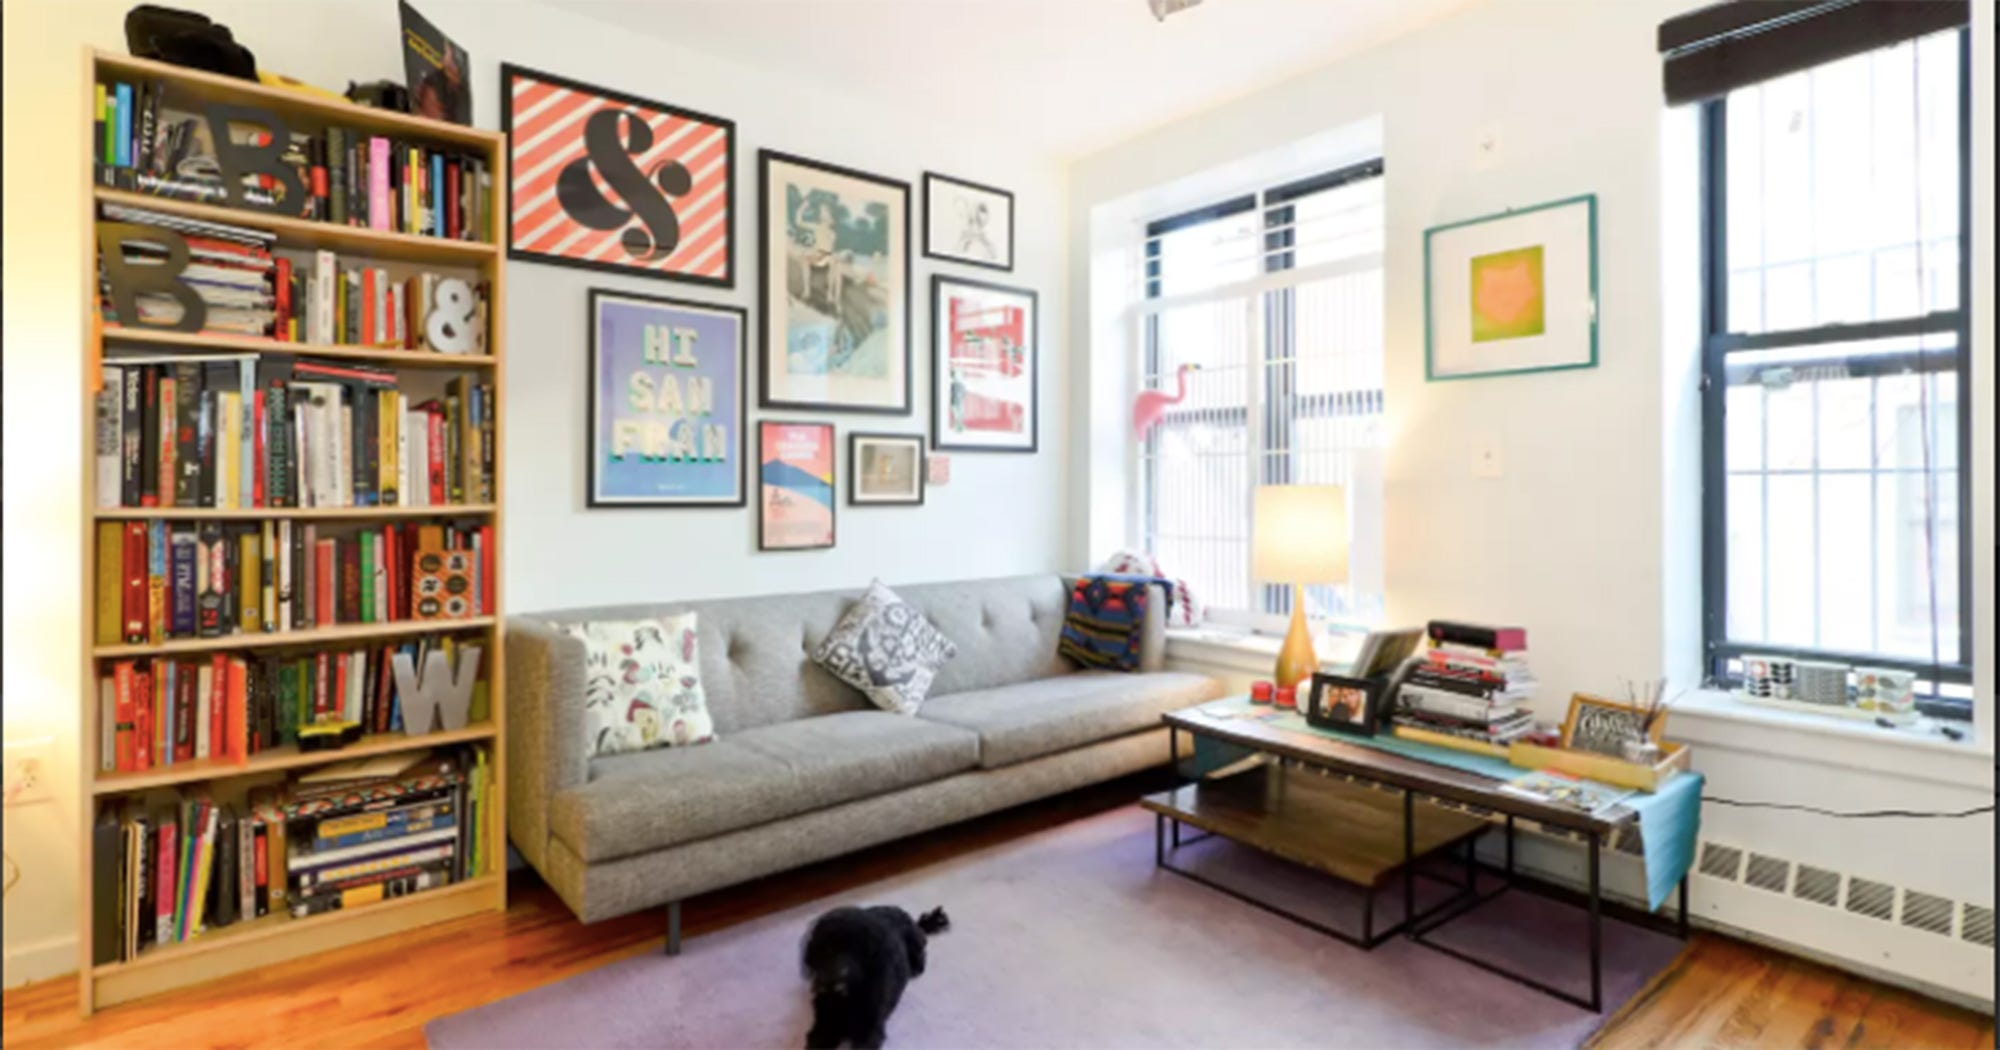 Here's What $100 Will Get You On Airbnb In NYC